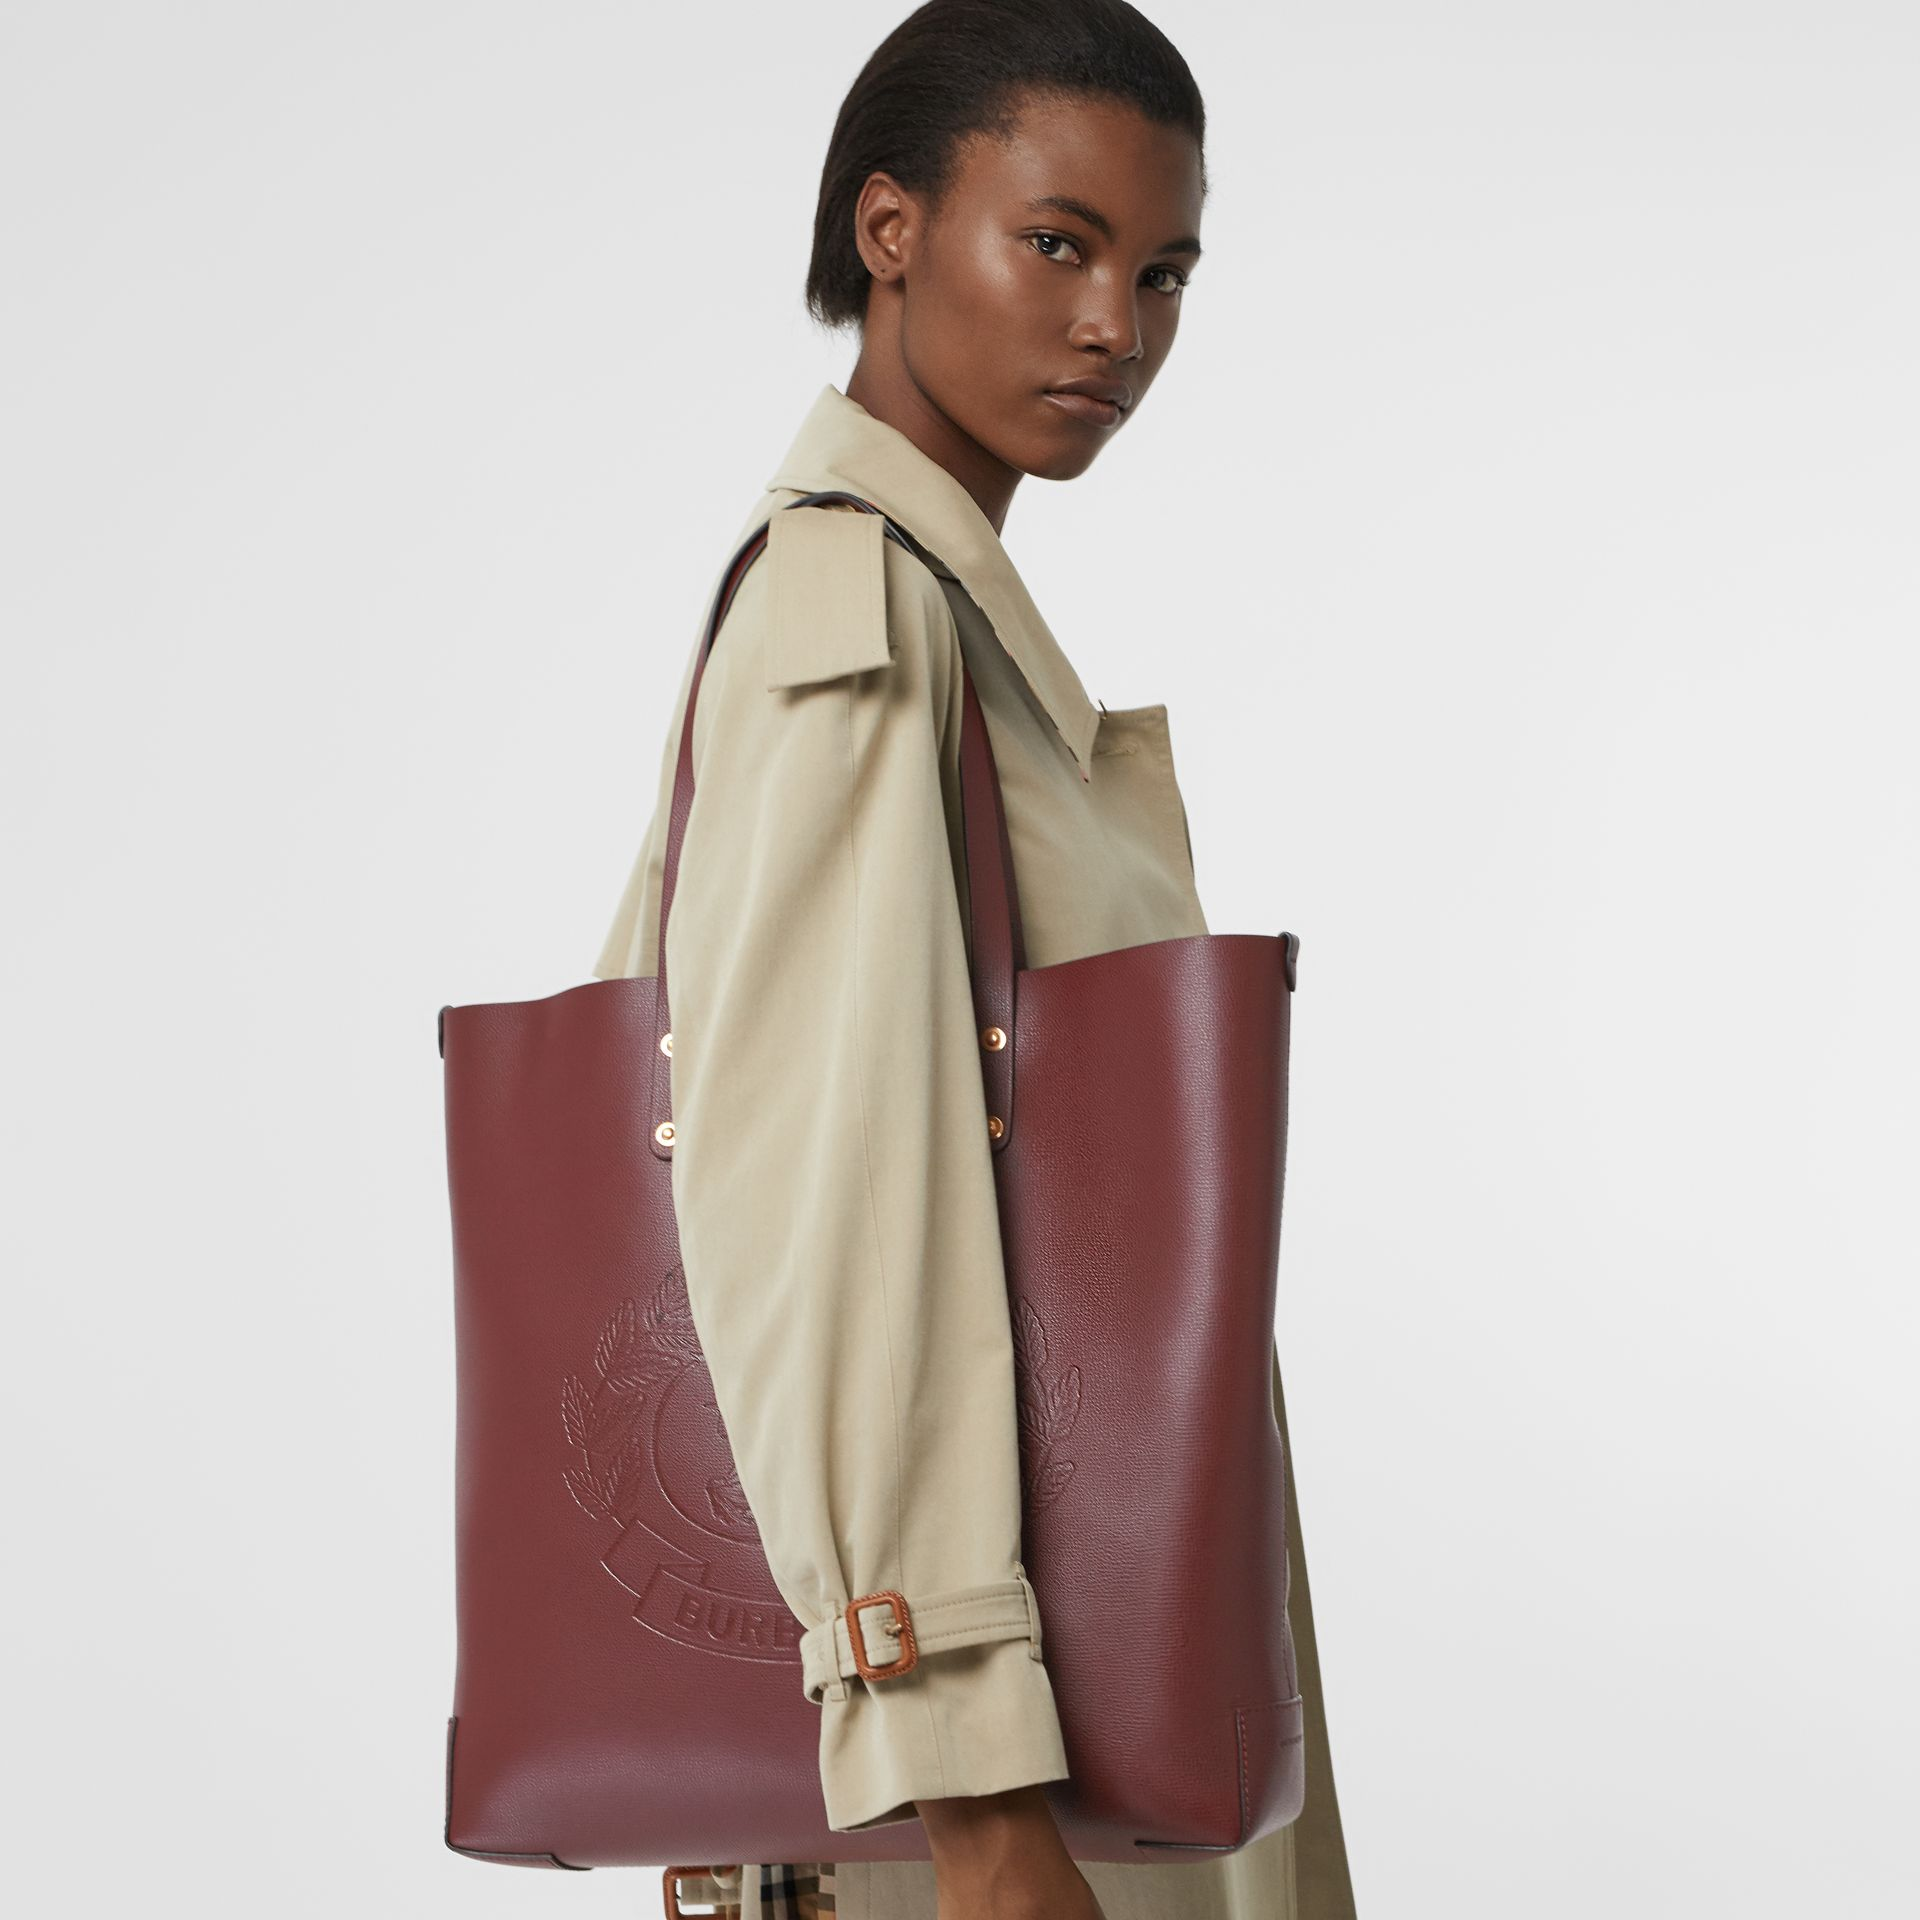 Embossed Crest Leather Tote in Burgundy | Burberry - gallery image 3